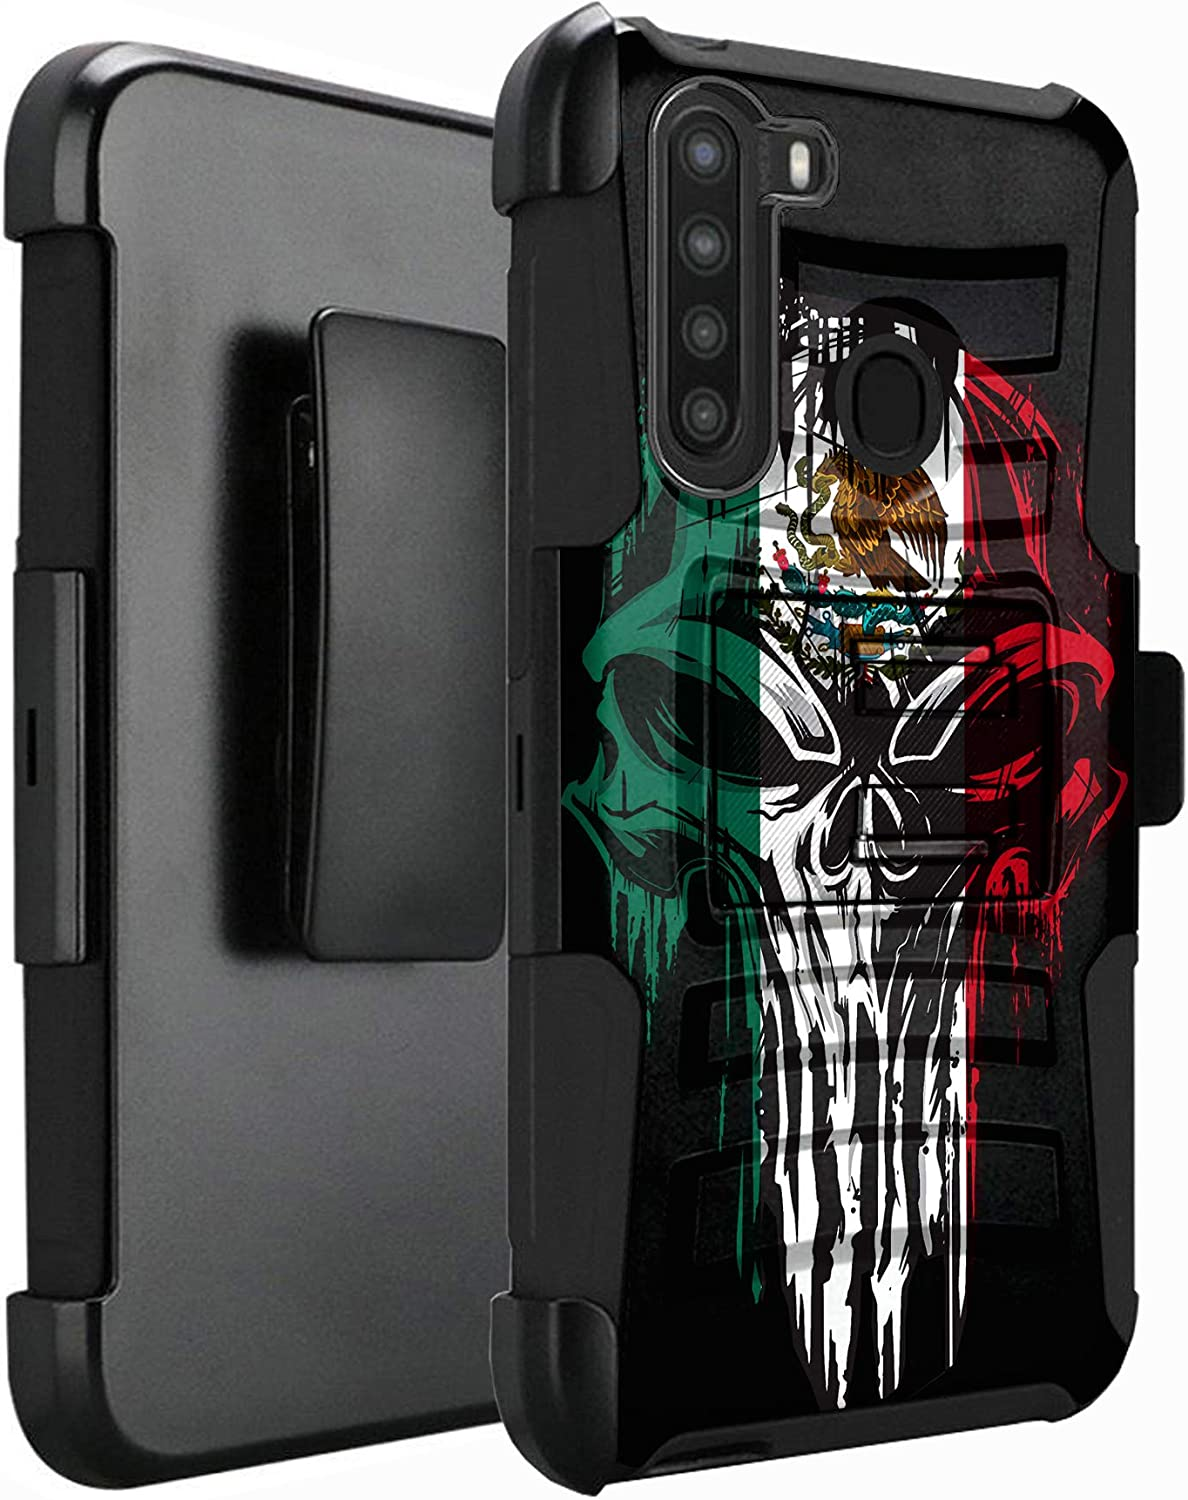 DALUX Hybrid Kickstand Holster Phone Case Compatible with Galaxy A21 (2020) - Melting Skull Mexico Flag